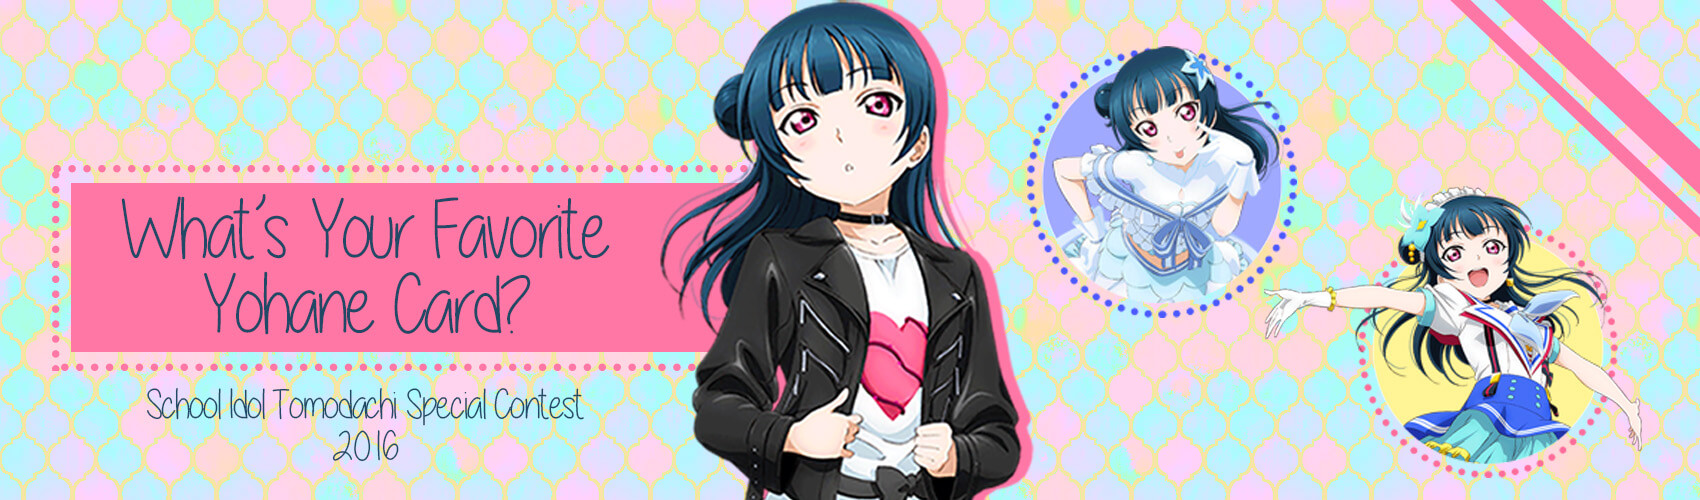 What's your favorite Yohane card?